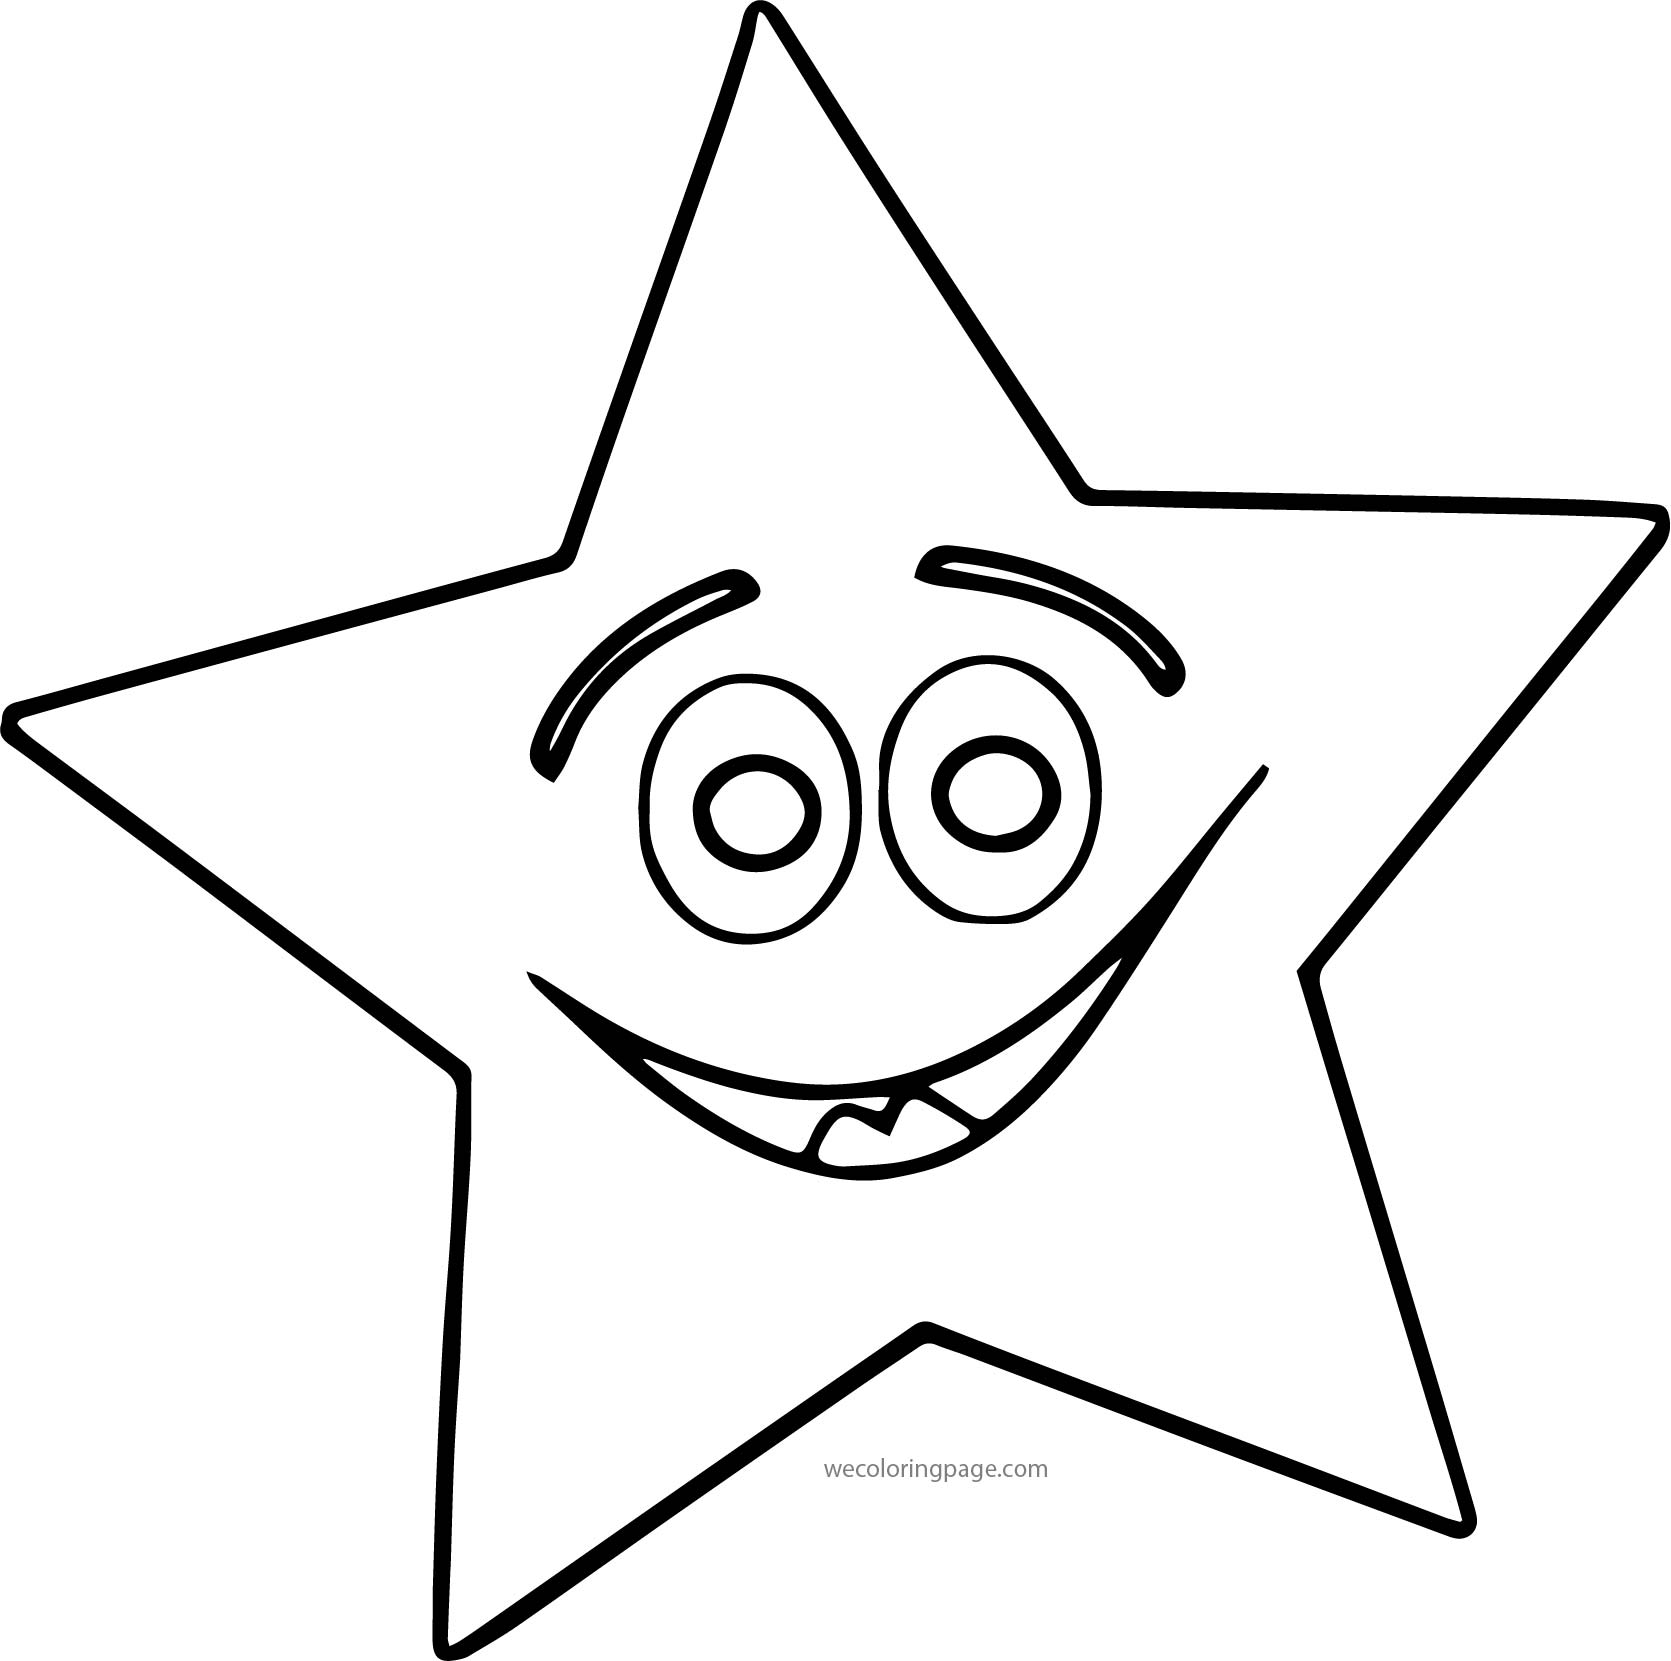 Happy Star Coloring Page Wecoloringpage